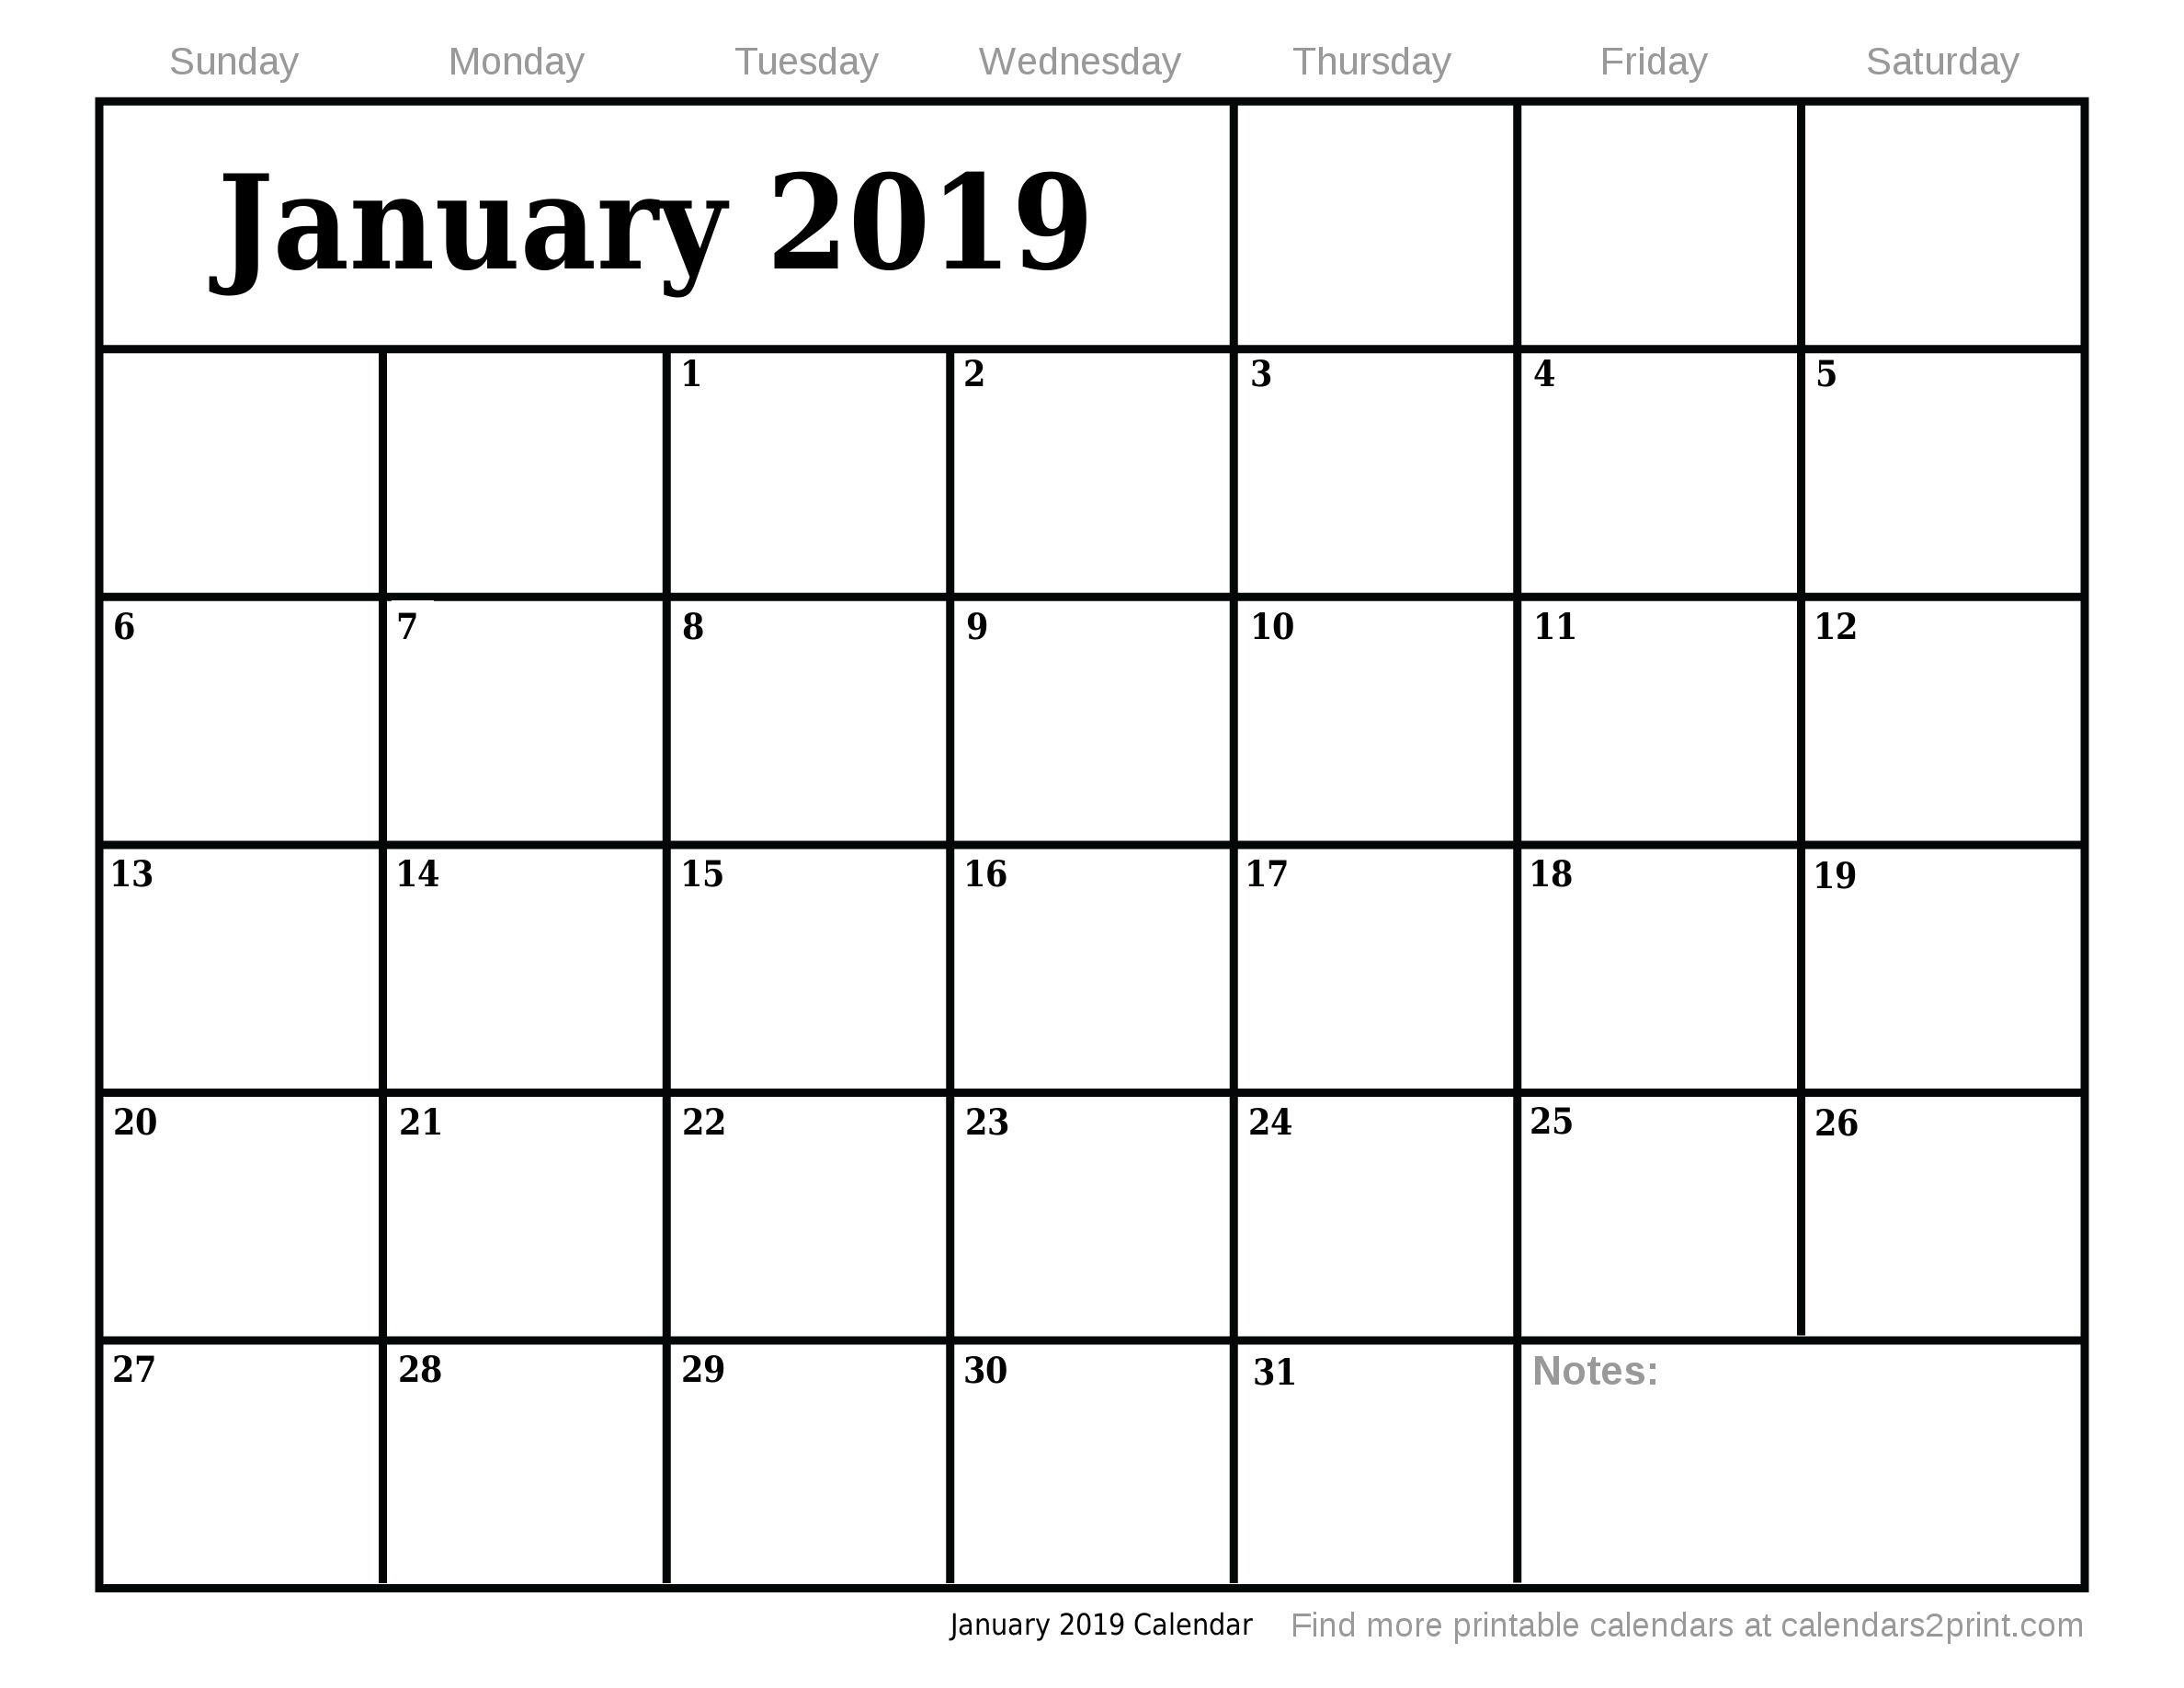 picture relating to Printable Calendar February referred to as January 2019 Printable Calendar, February 2019 Calendar